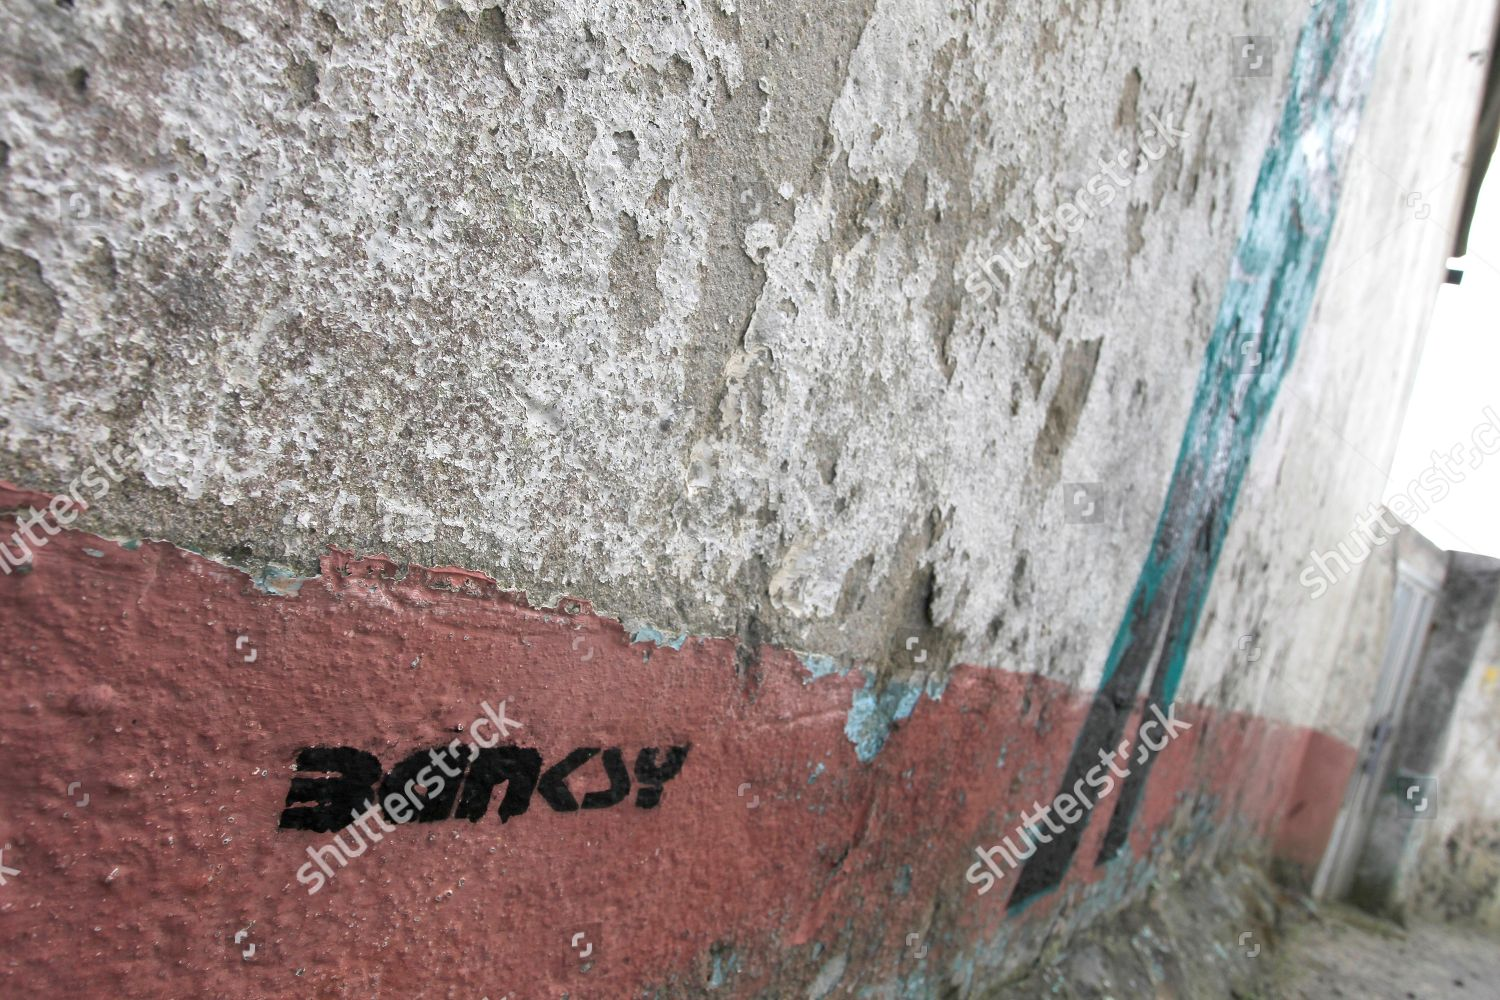 Composite Image Of Stencil Graffiti >> View Stencil Graffiti Depicting Two Spanish Civil Editorial Stock